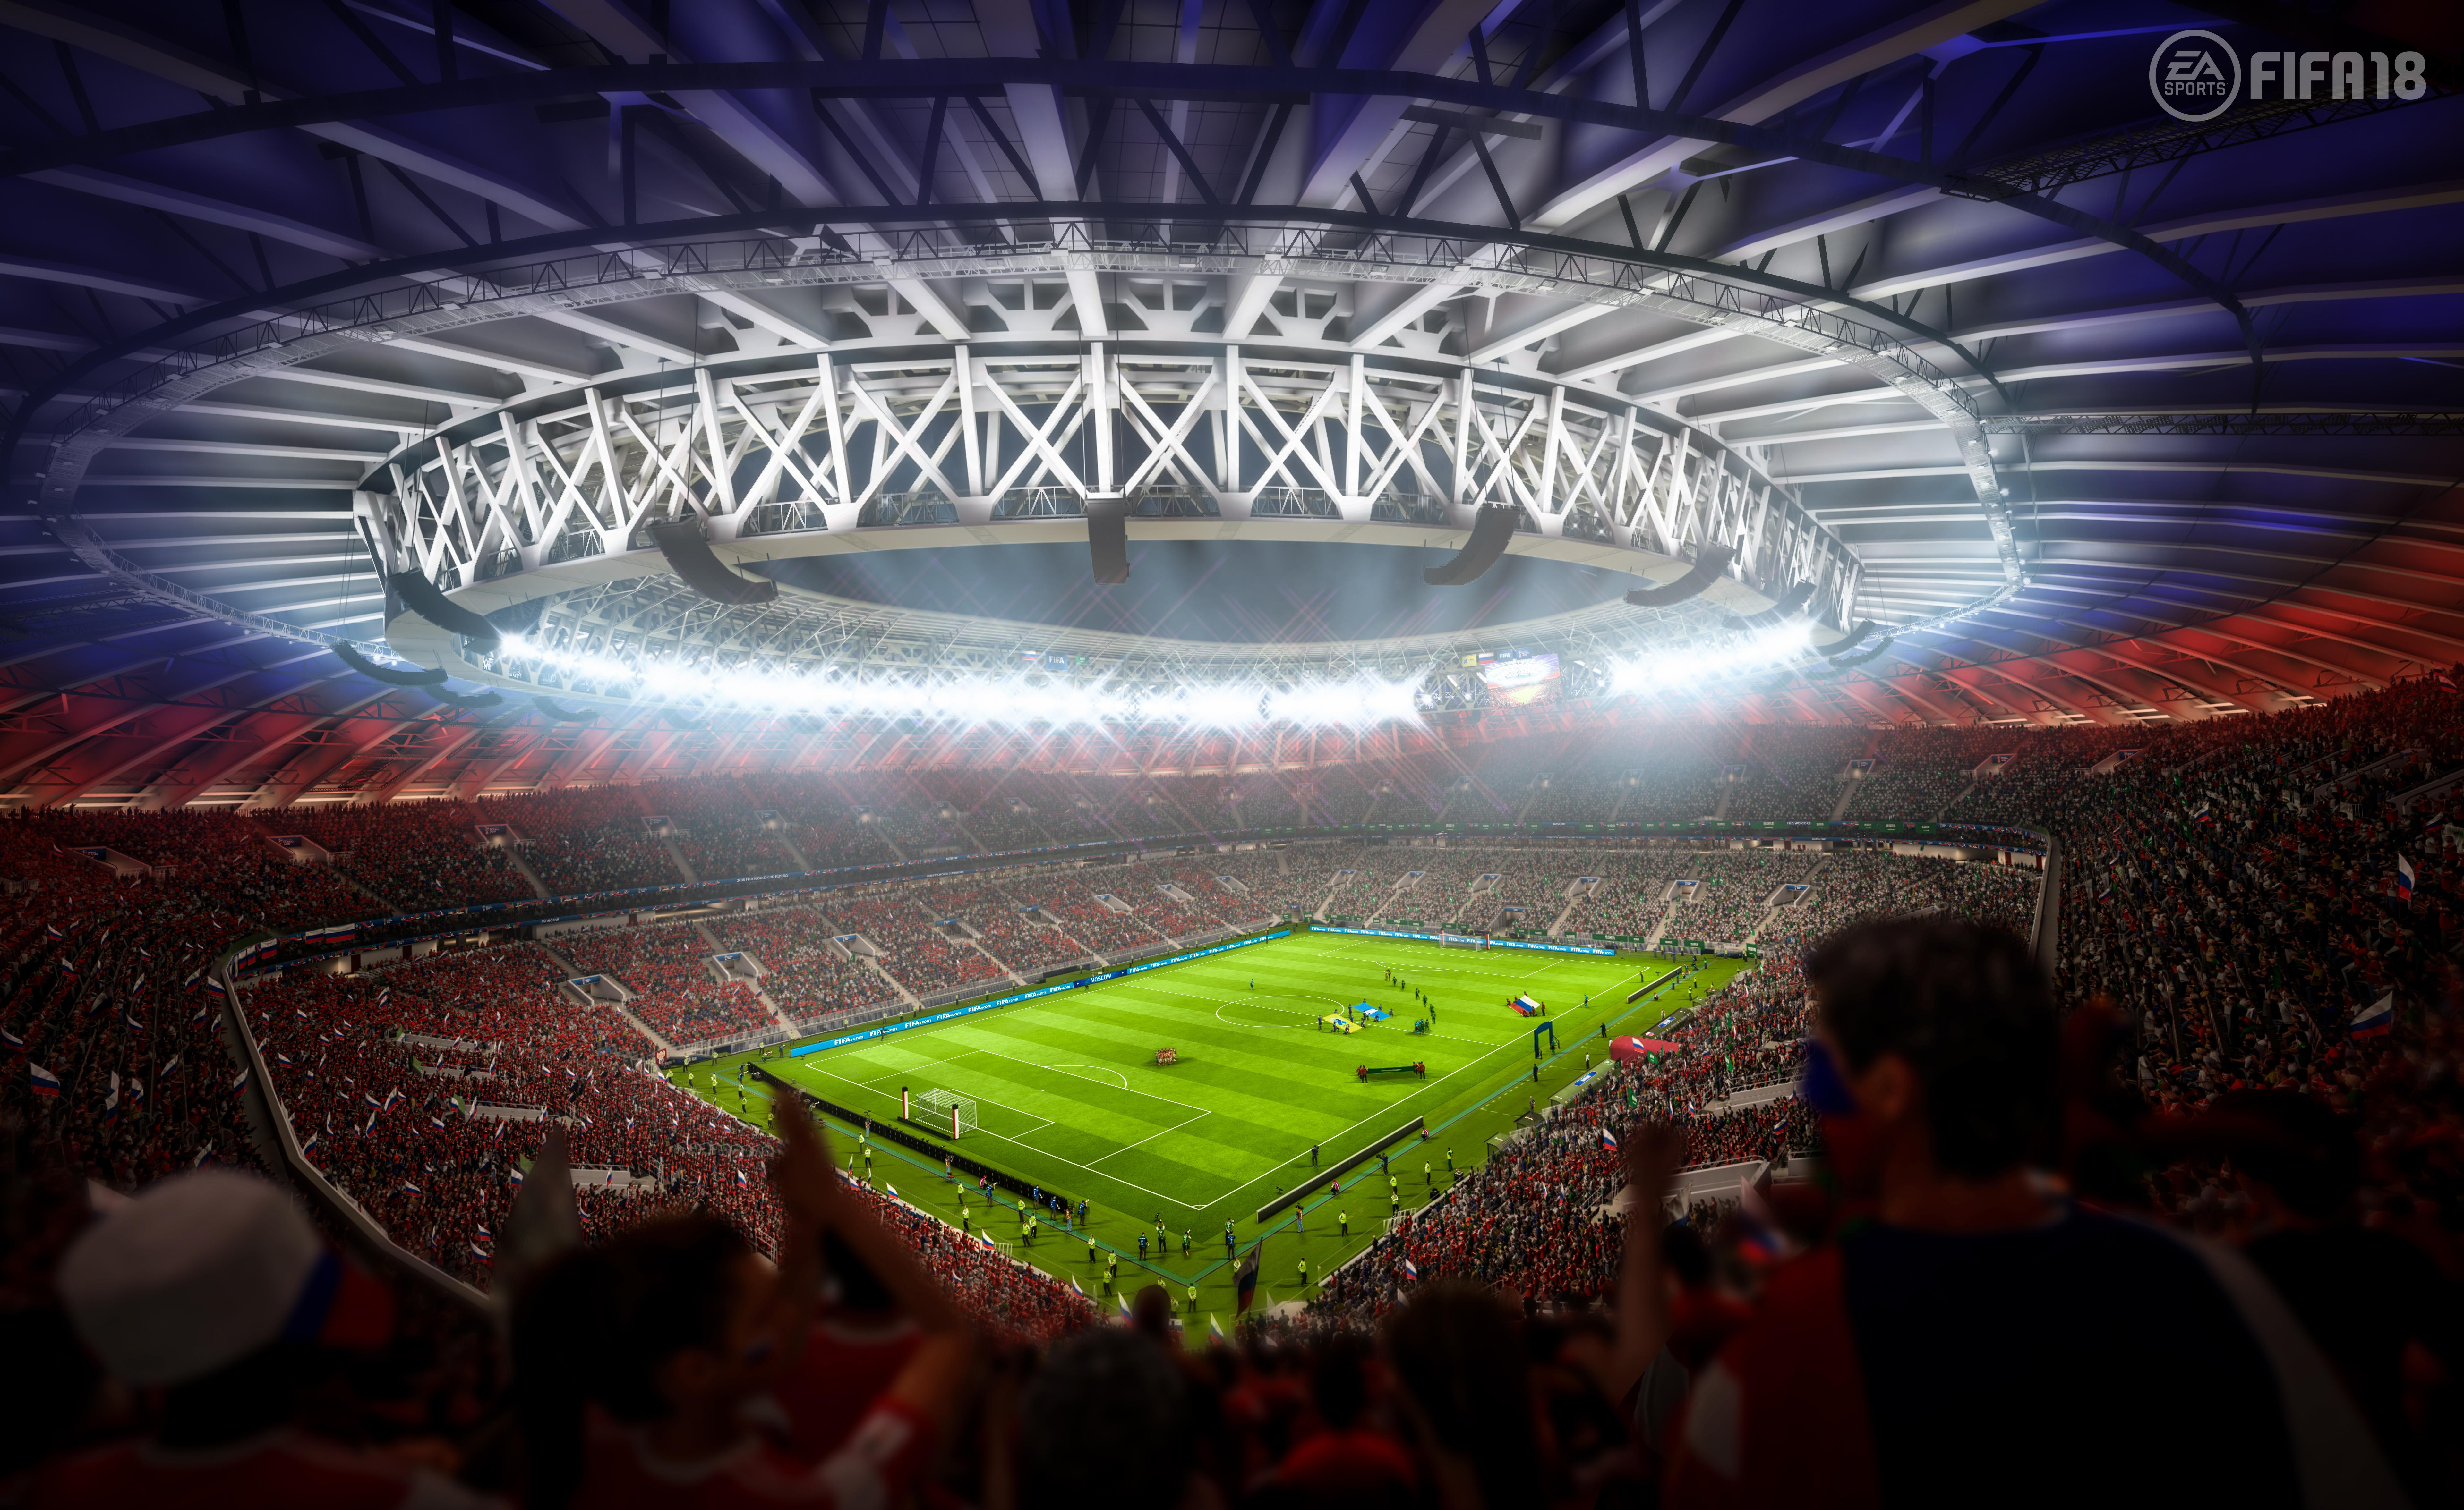 The Luzhniki stadium is just one of the arenas that will arrive in the free update